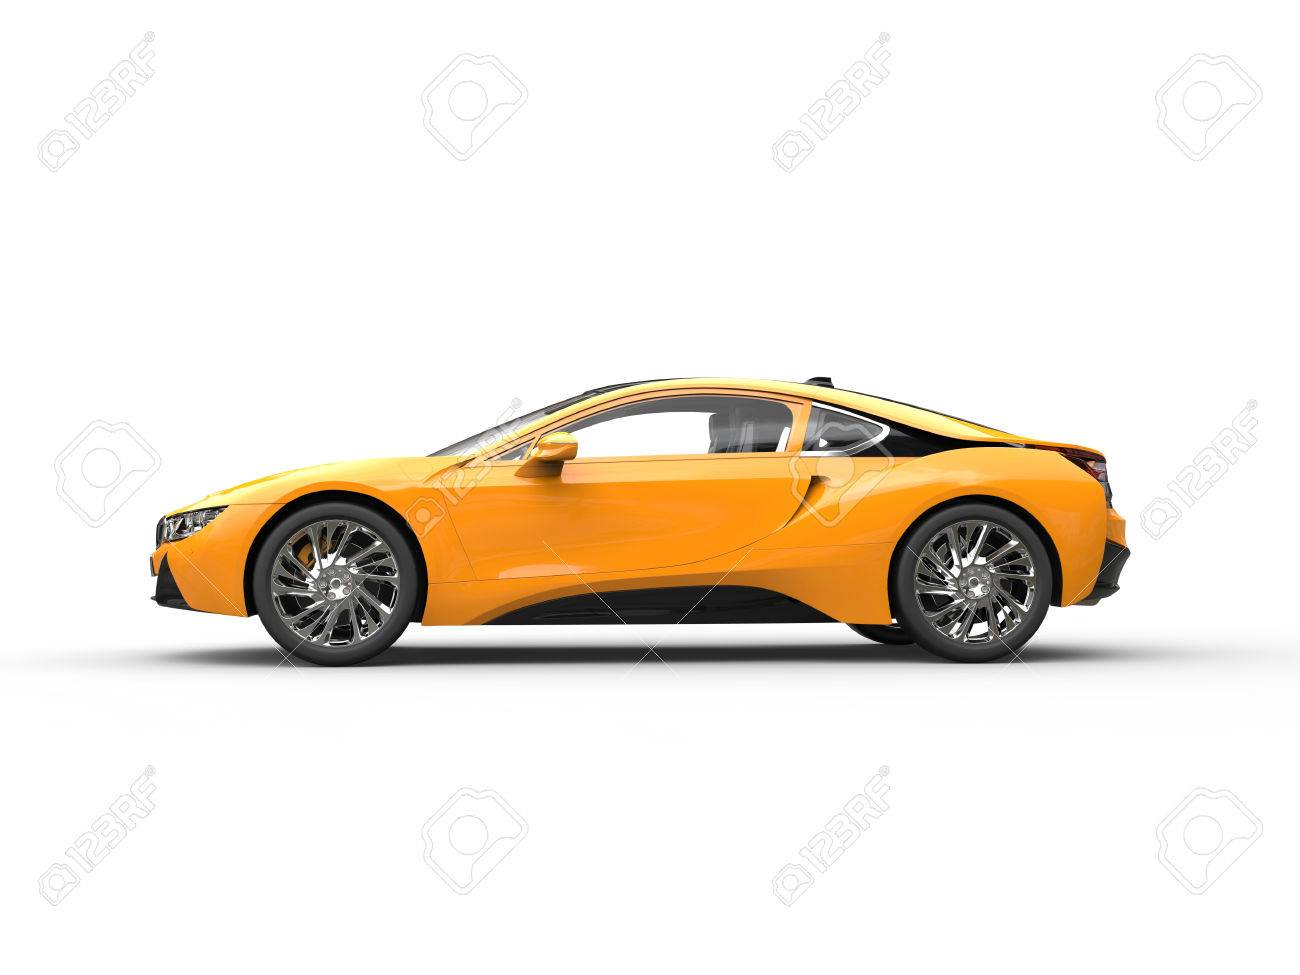 Modern Yellow Sports Car Side View Isolated On White Background